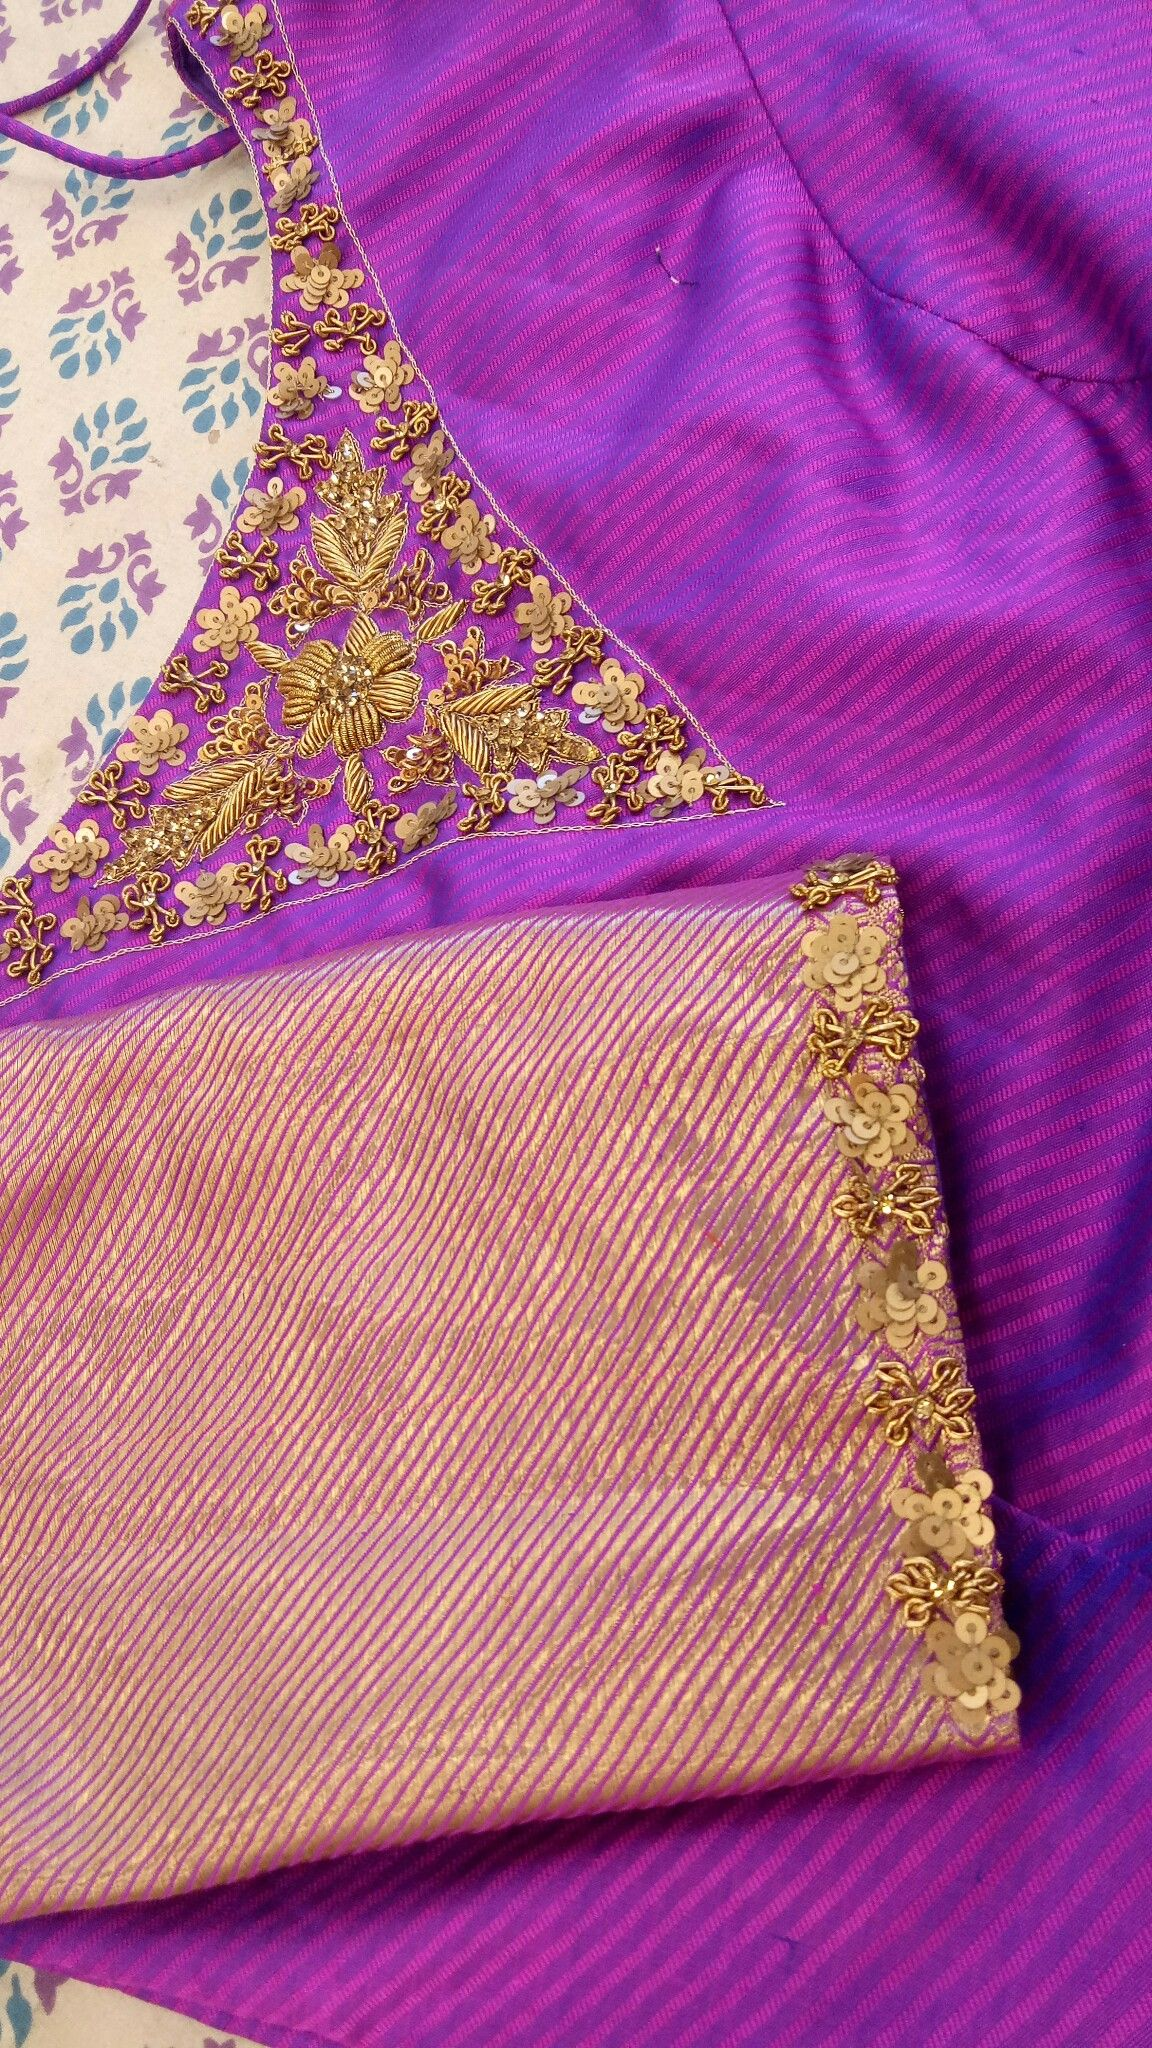 Pin by kavita reddy on maggam work pinterest blouse designs blouse patterns blouse designs work blouse simple embroidery embroidery designs silk blouses saree blouse indian attire sarees bankloansurffo Images